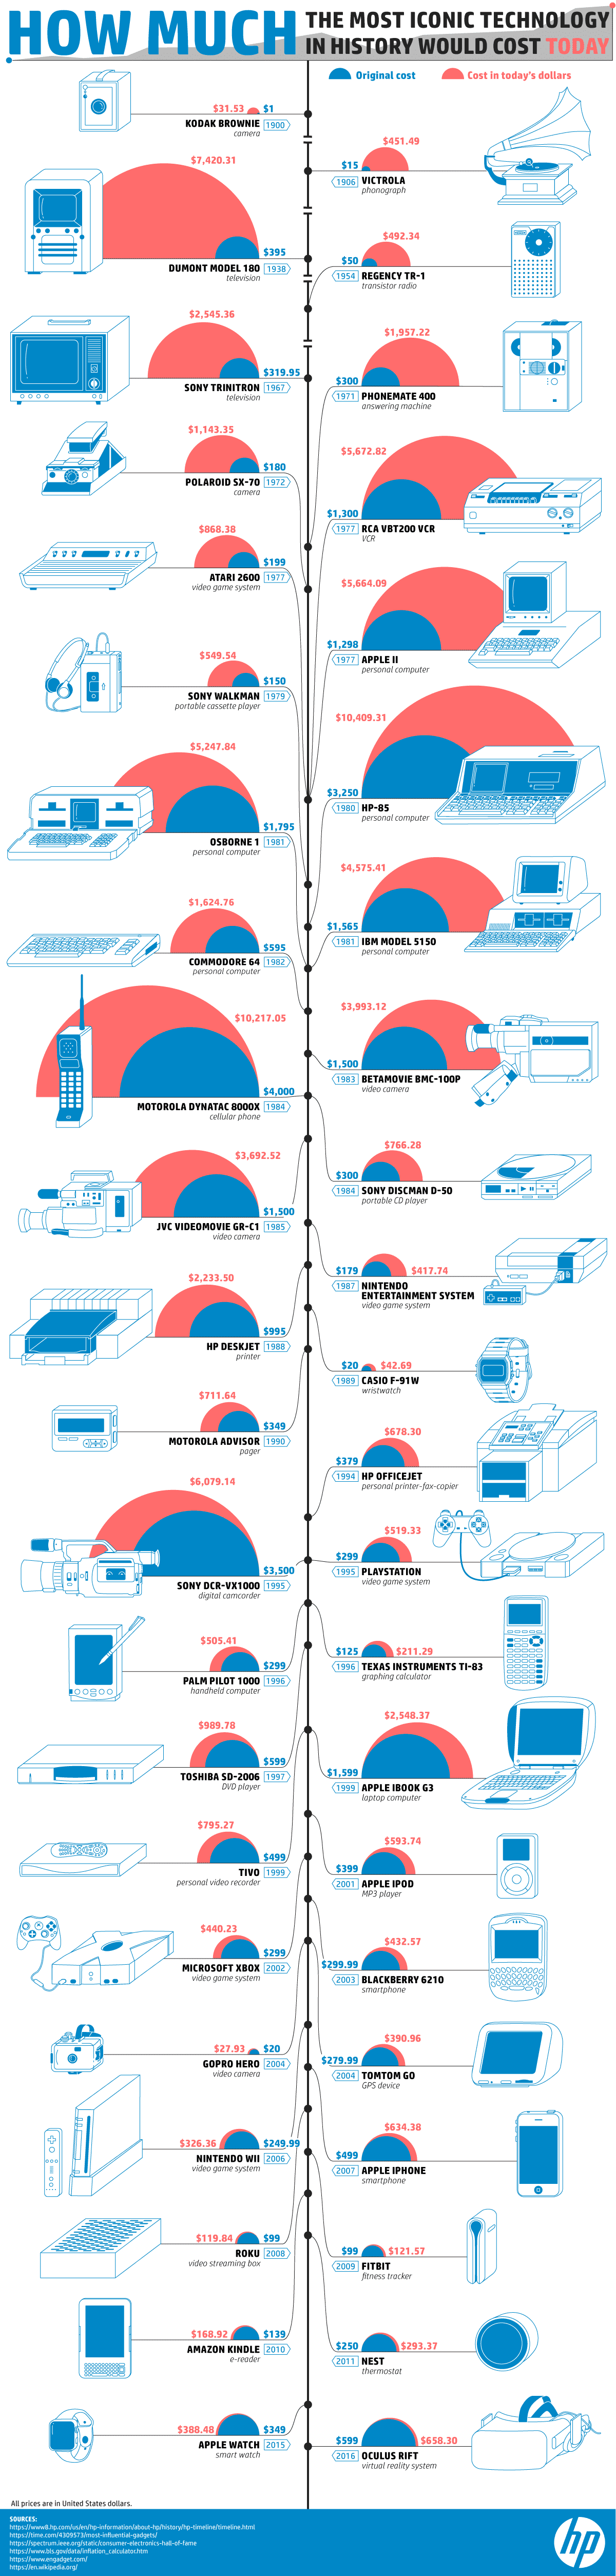 How Much the Most Iconic Tech of All Time Would Cost After Inflation